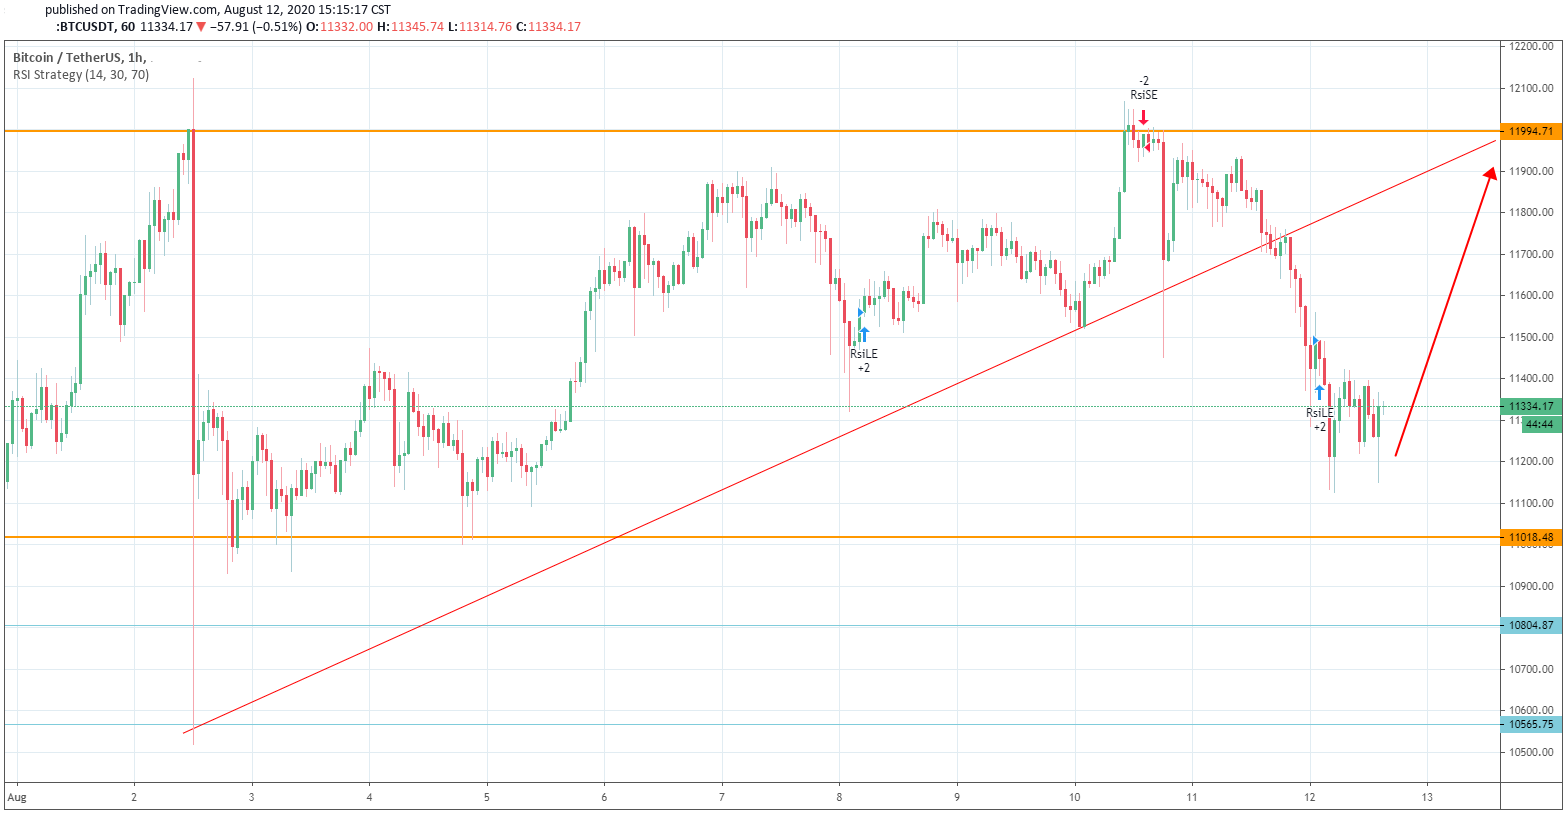 A Bullish Continuation on Bitcoin Has Not Changed Despite the Great Pull Back